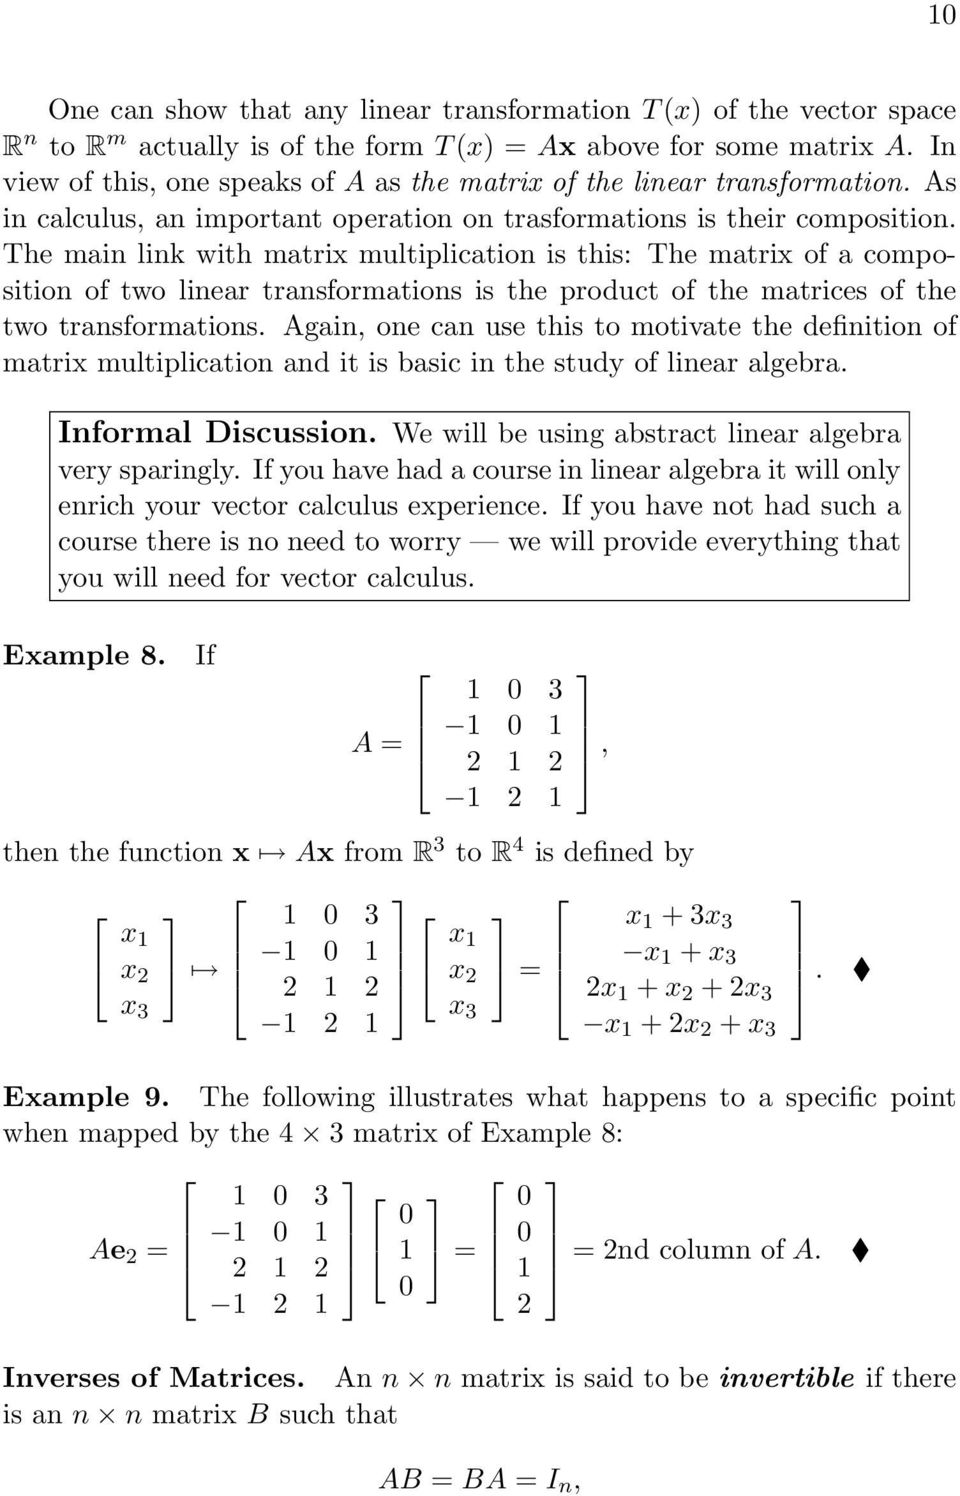 transformations is the product of the matrices of the two transformations Again, one can use this to motivate the definition of matrix multiplication and it is basic in the study of linear algebra